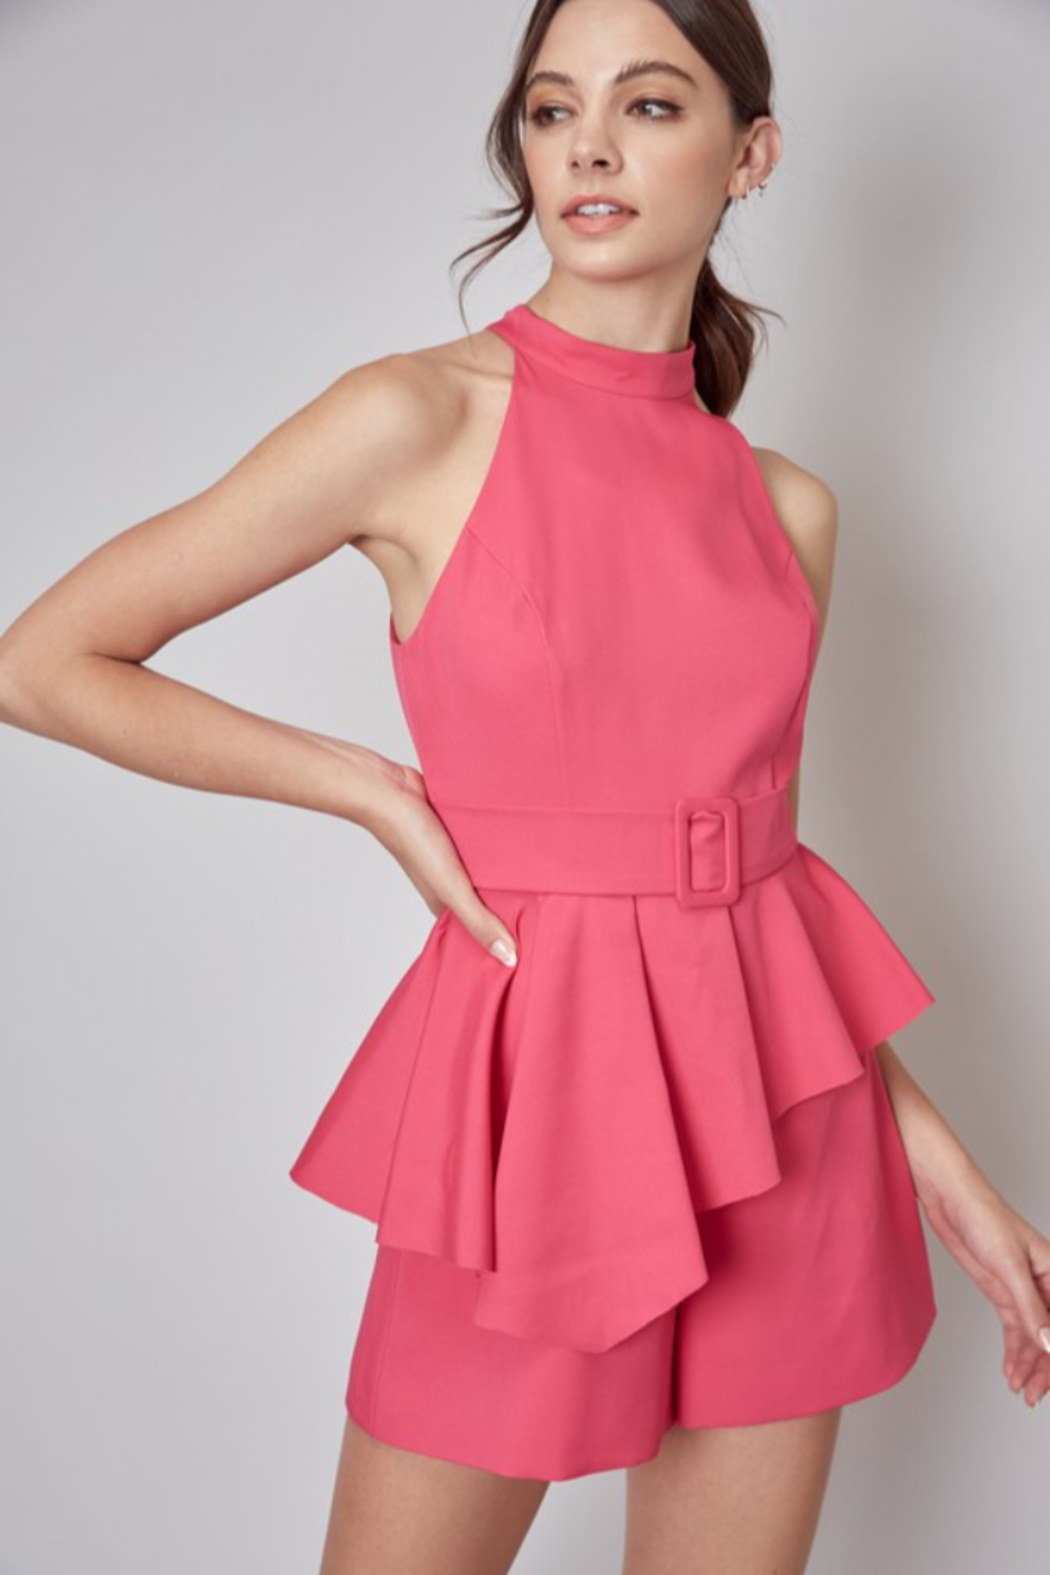 Do + Be  Belted Peplum Romper - Main Image